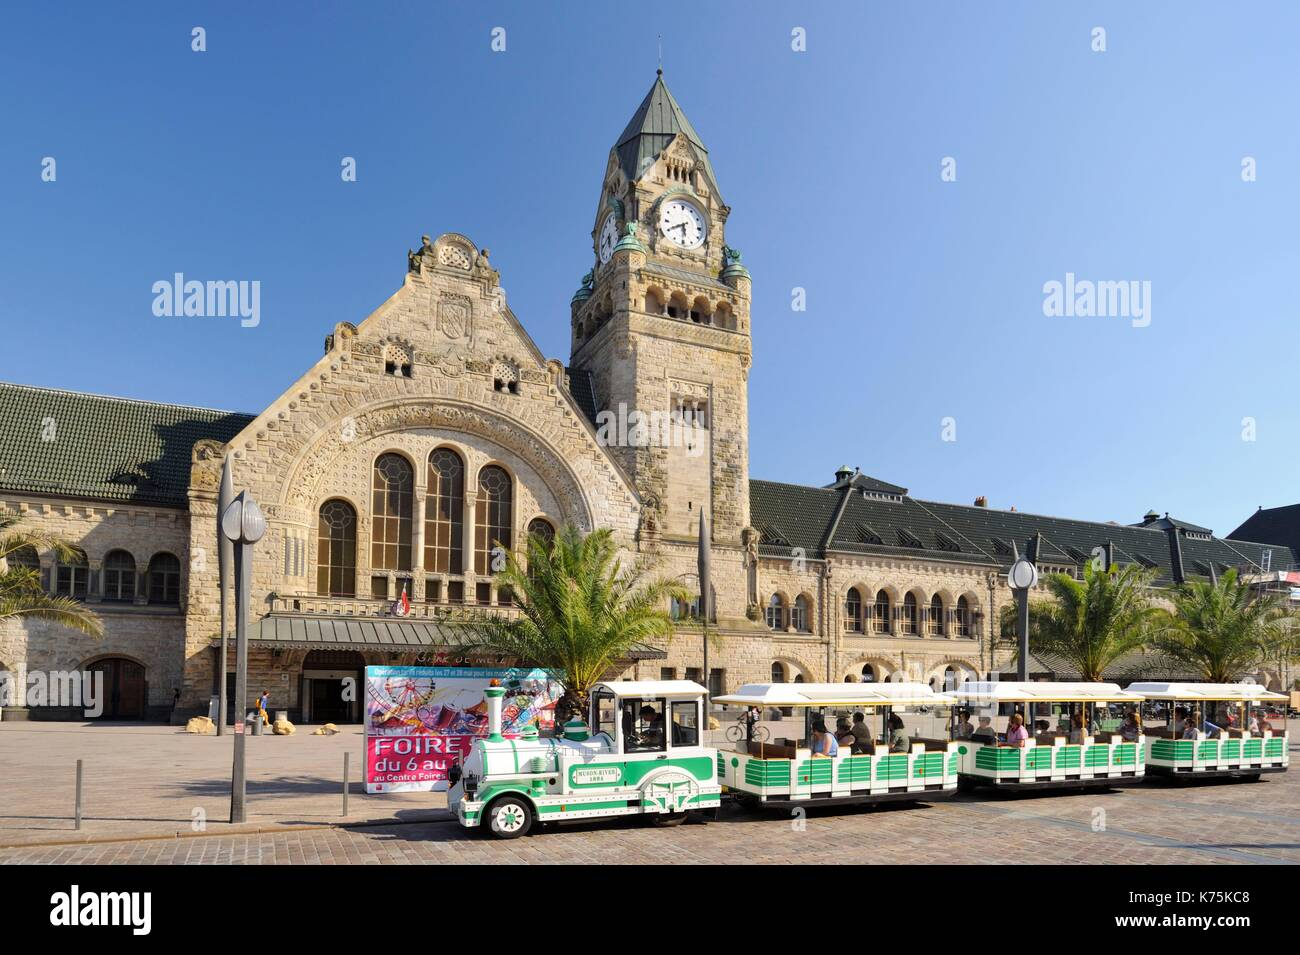 France, Moselle, Metz, railway Station of Metz-ville inaugurated in 1908 and elected in 2017 most beautiful railway station of France by Internet users following a competition organized on Facebook by Gares & Connexions, crossing of the small tourist train - Stock Image